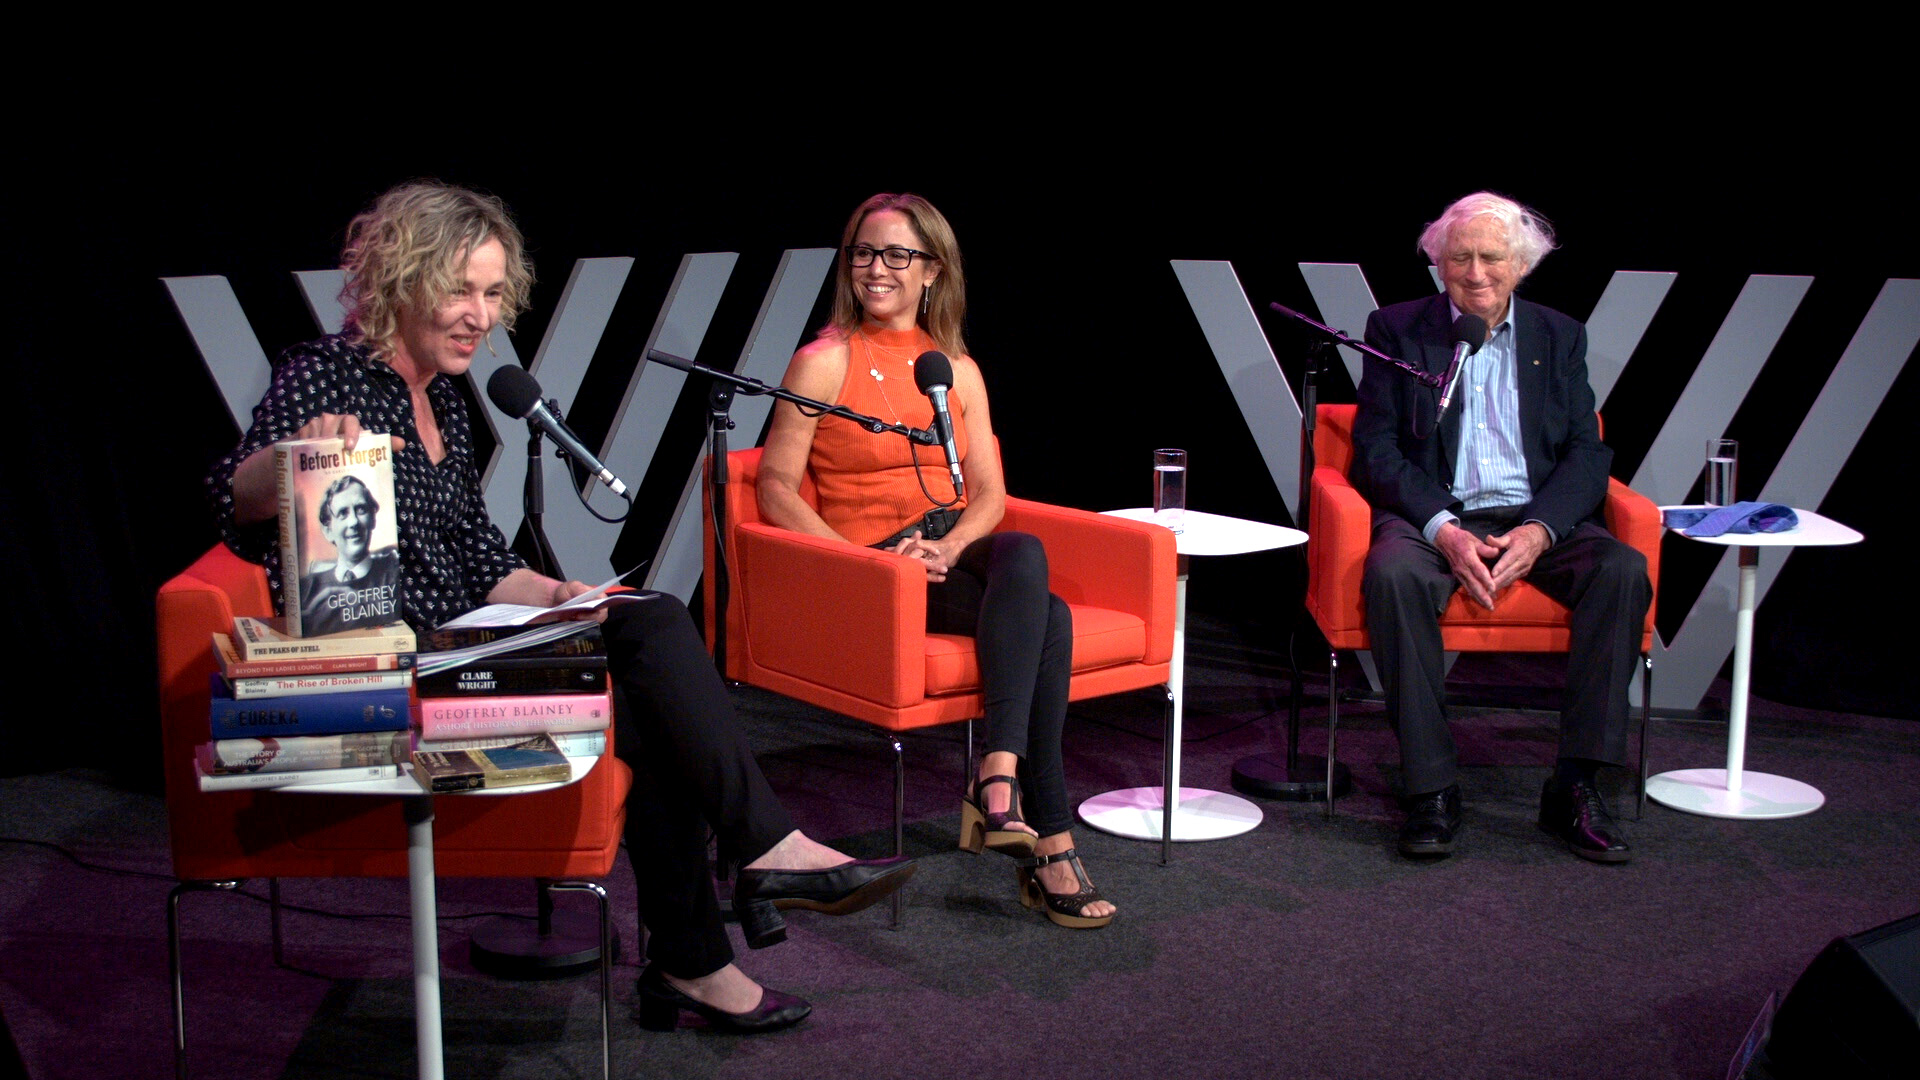 Photo of Sally Warhaft, Clare Wright and Geoffrey Blainey